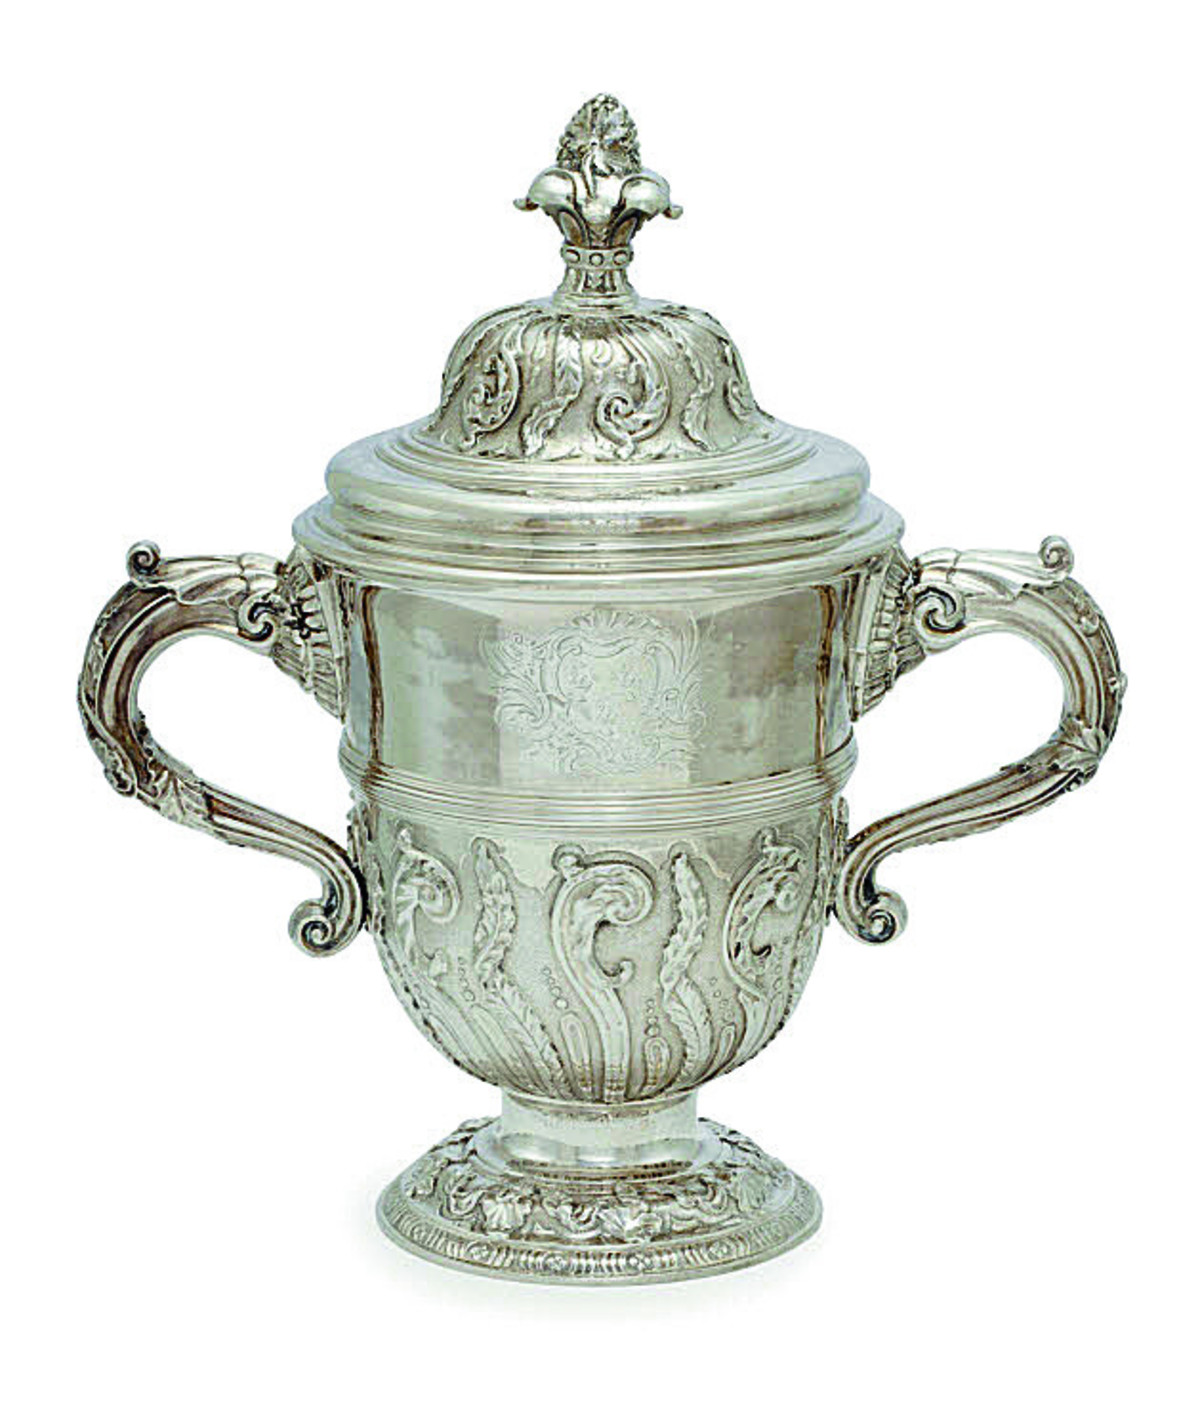 Silver cup could sell for £20,000 at auction